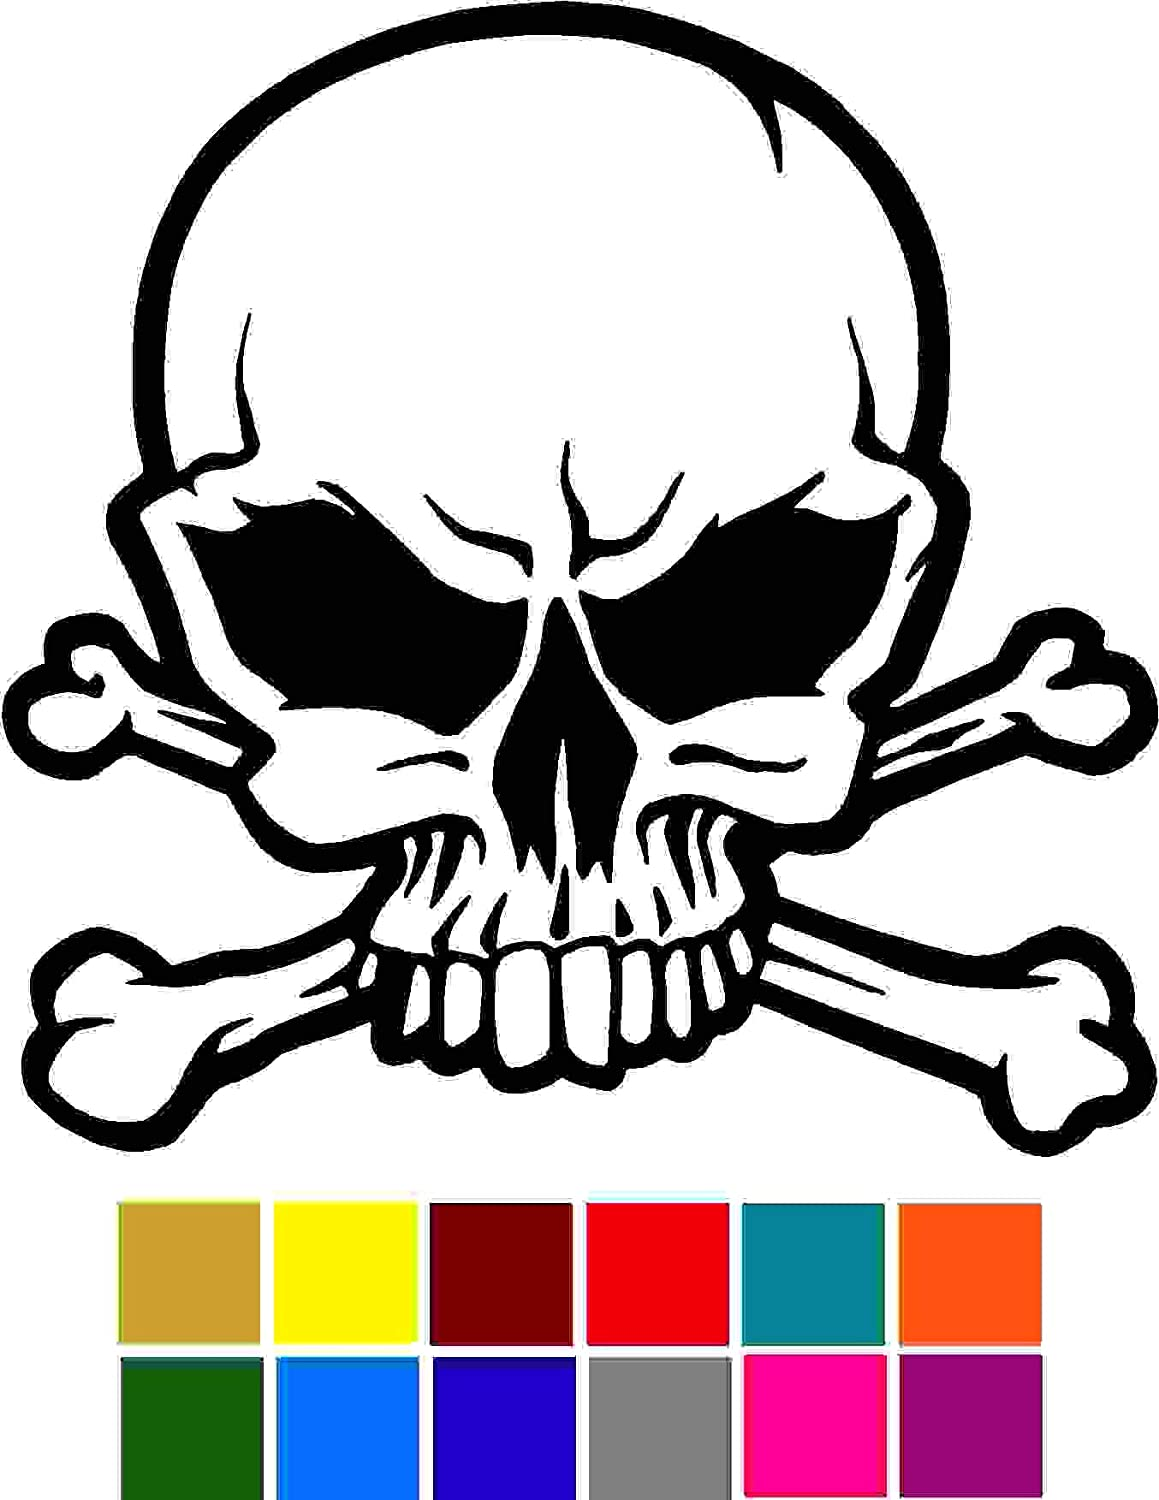 Skull Face With Crossbones Car Window Tumblers Wall Decal Sticker Vinyl Laptops Cellphones Phones Tablets Ipads Helmets Motorcycles Computer Towers V and T Gifts